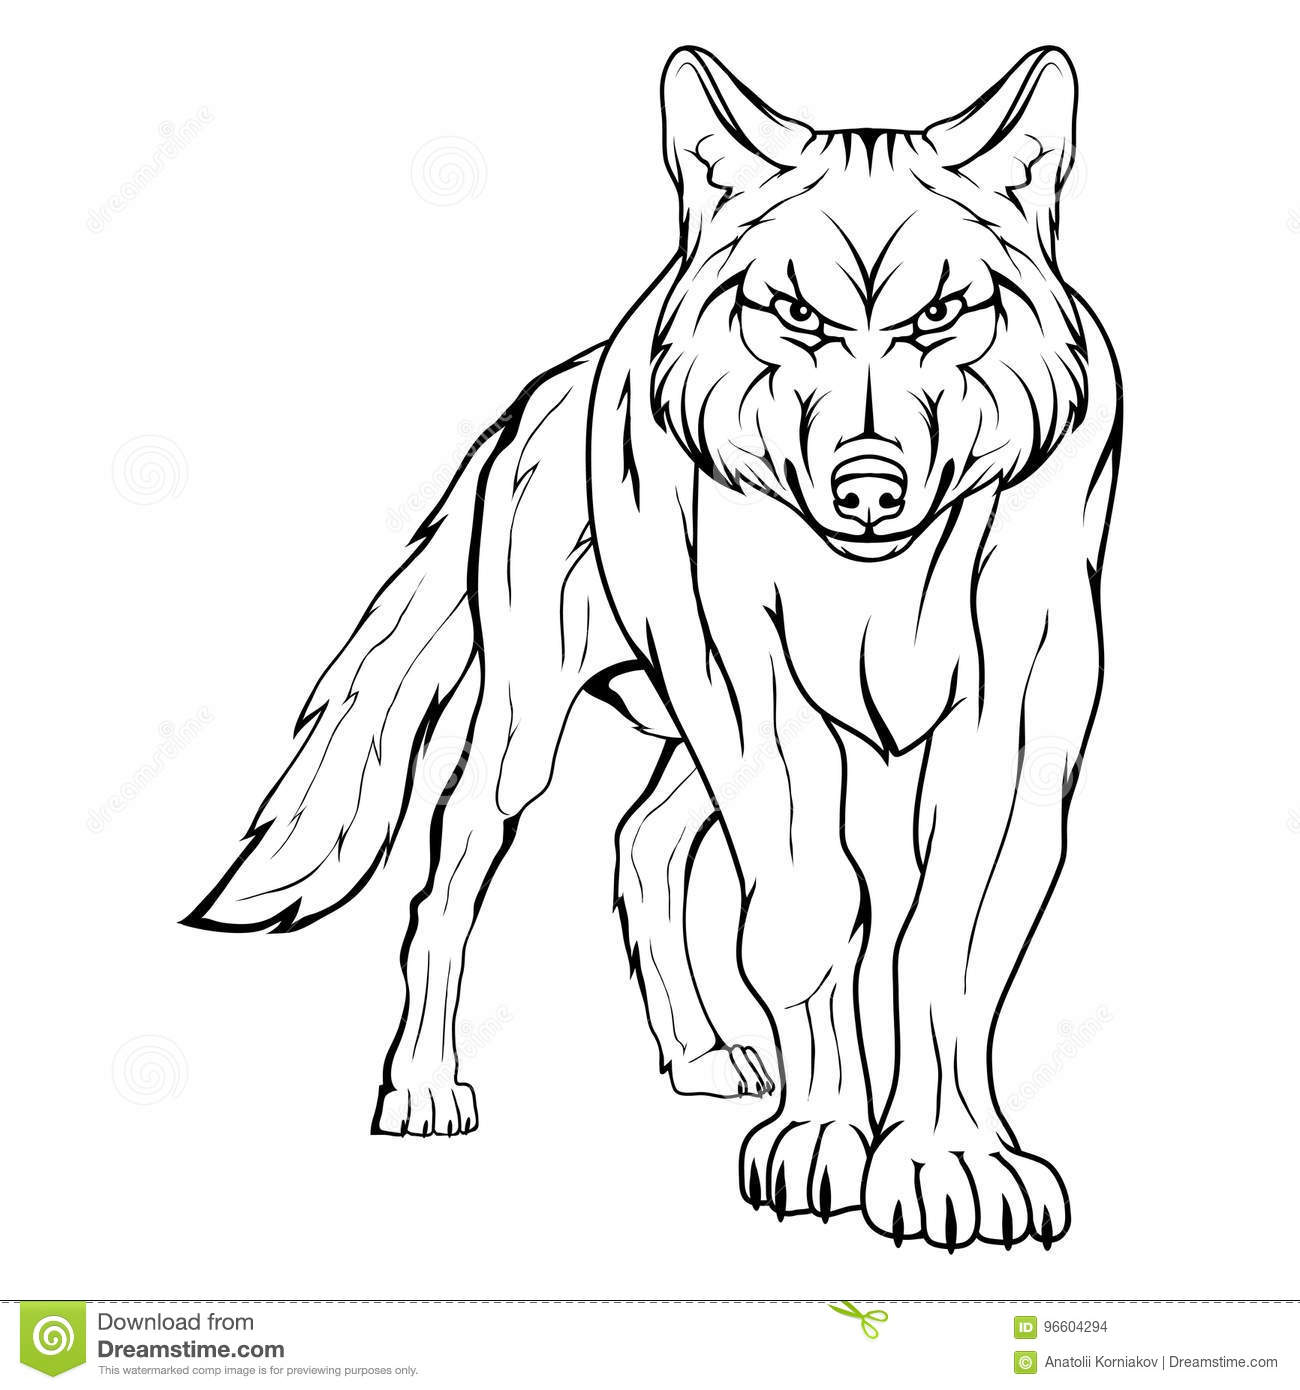 Line Art Wolf Tattoo: Vector Sketch Of A Wolf. Stock Vector. Illustration Of